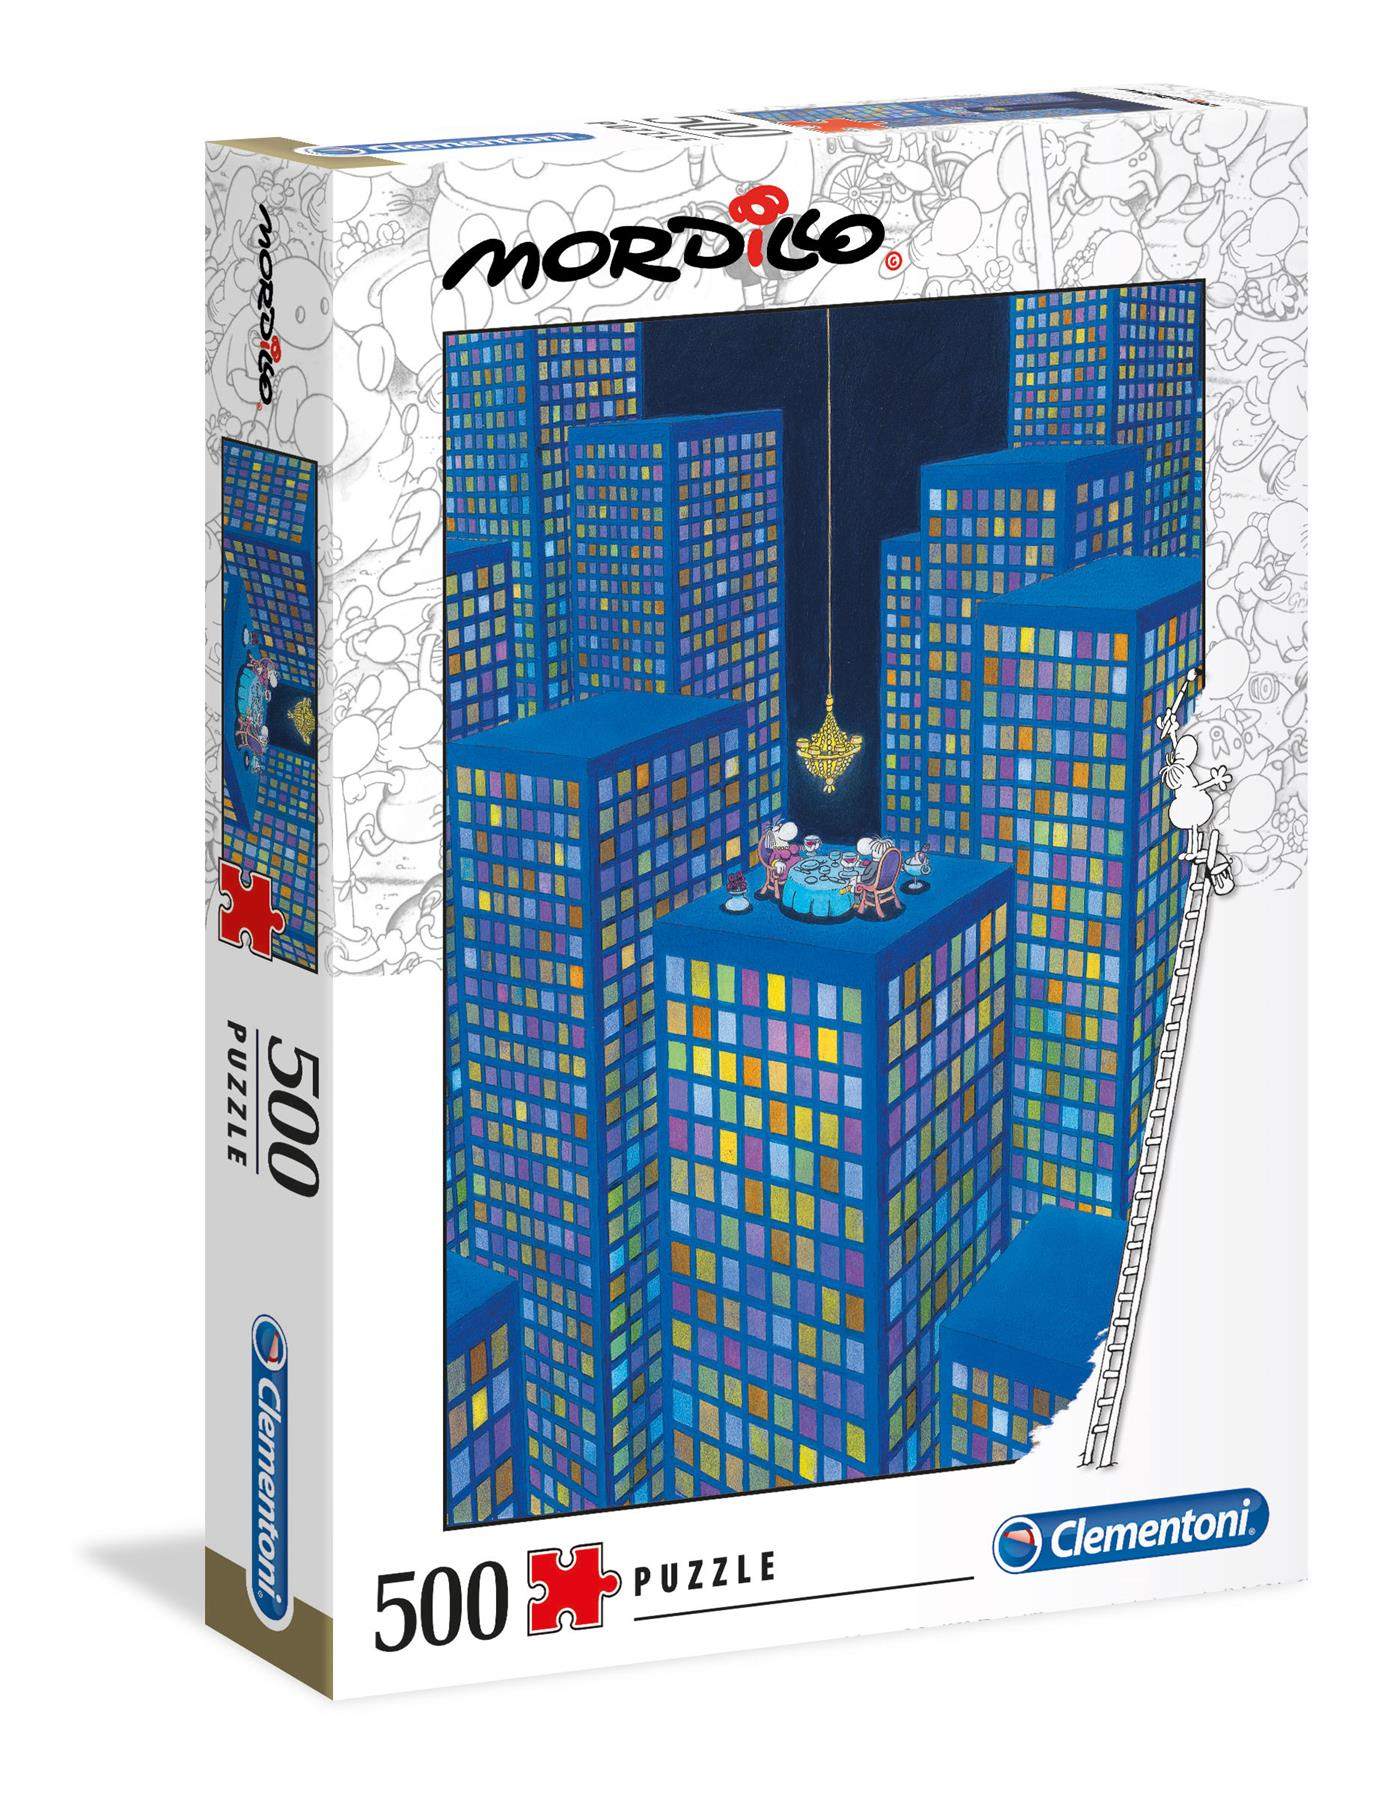 Clementoni Mordillo The Dinner High Quality Jigsaw Puzzle (500 Pieces)